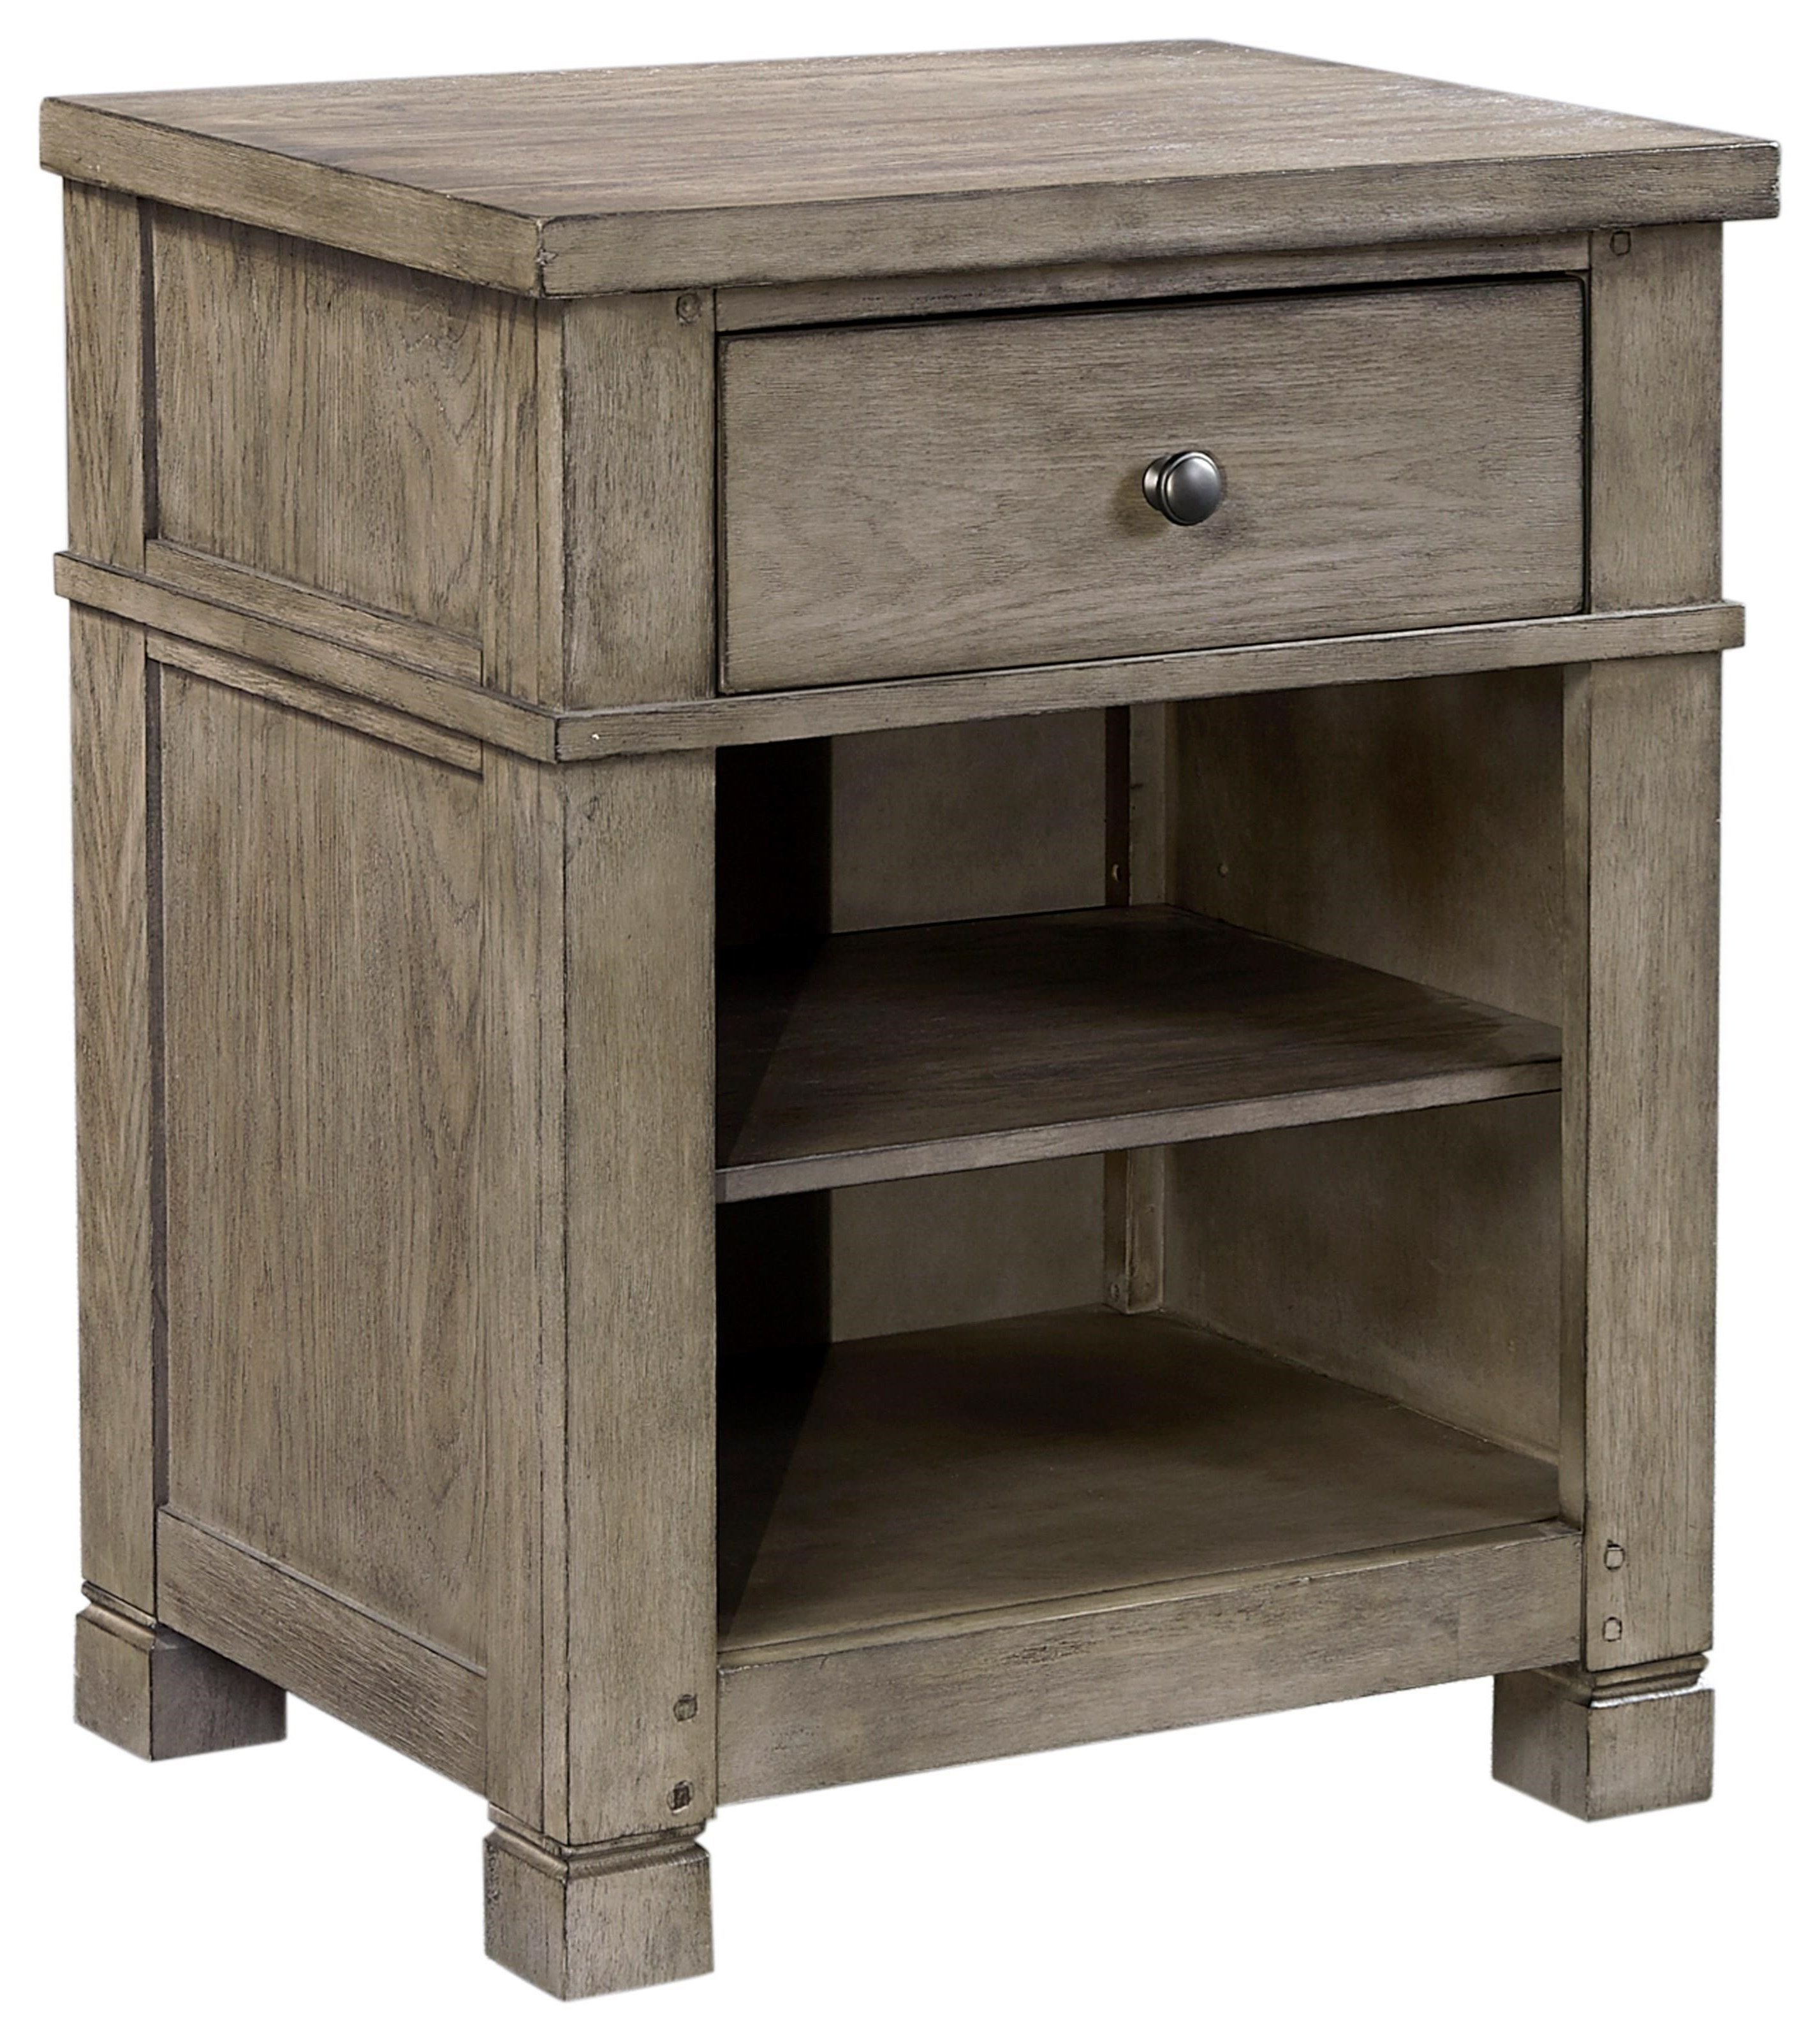 Tucker 1 Drawer Nightstand by Aspenhome at Darvin Furniture